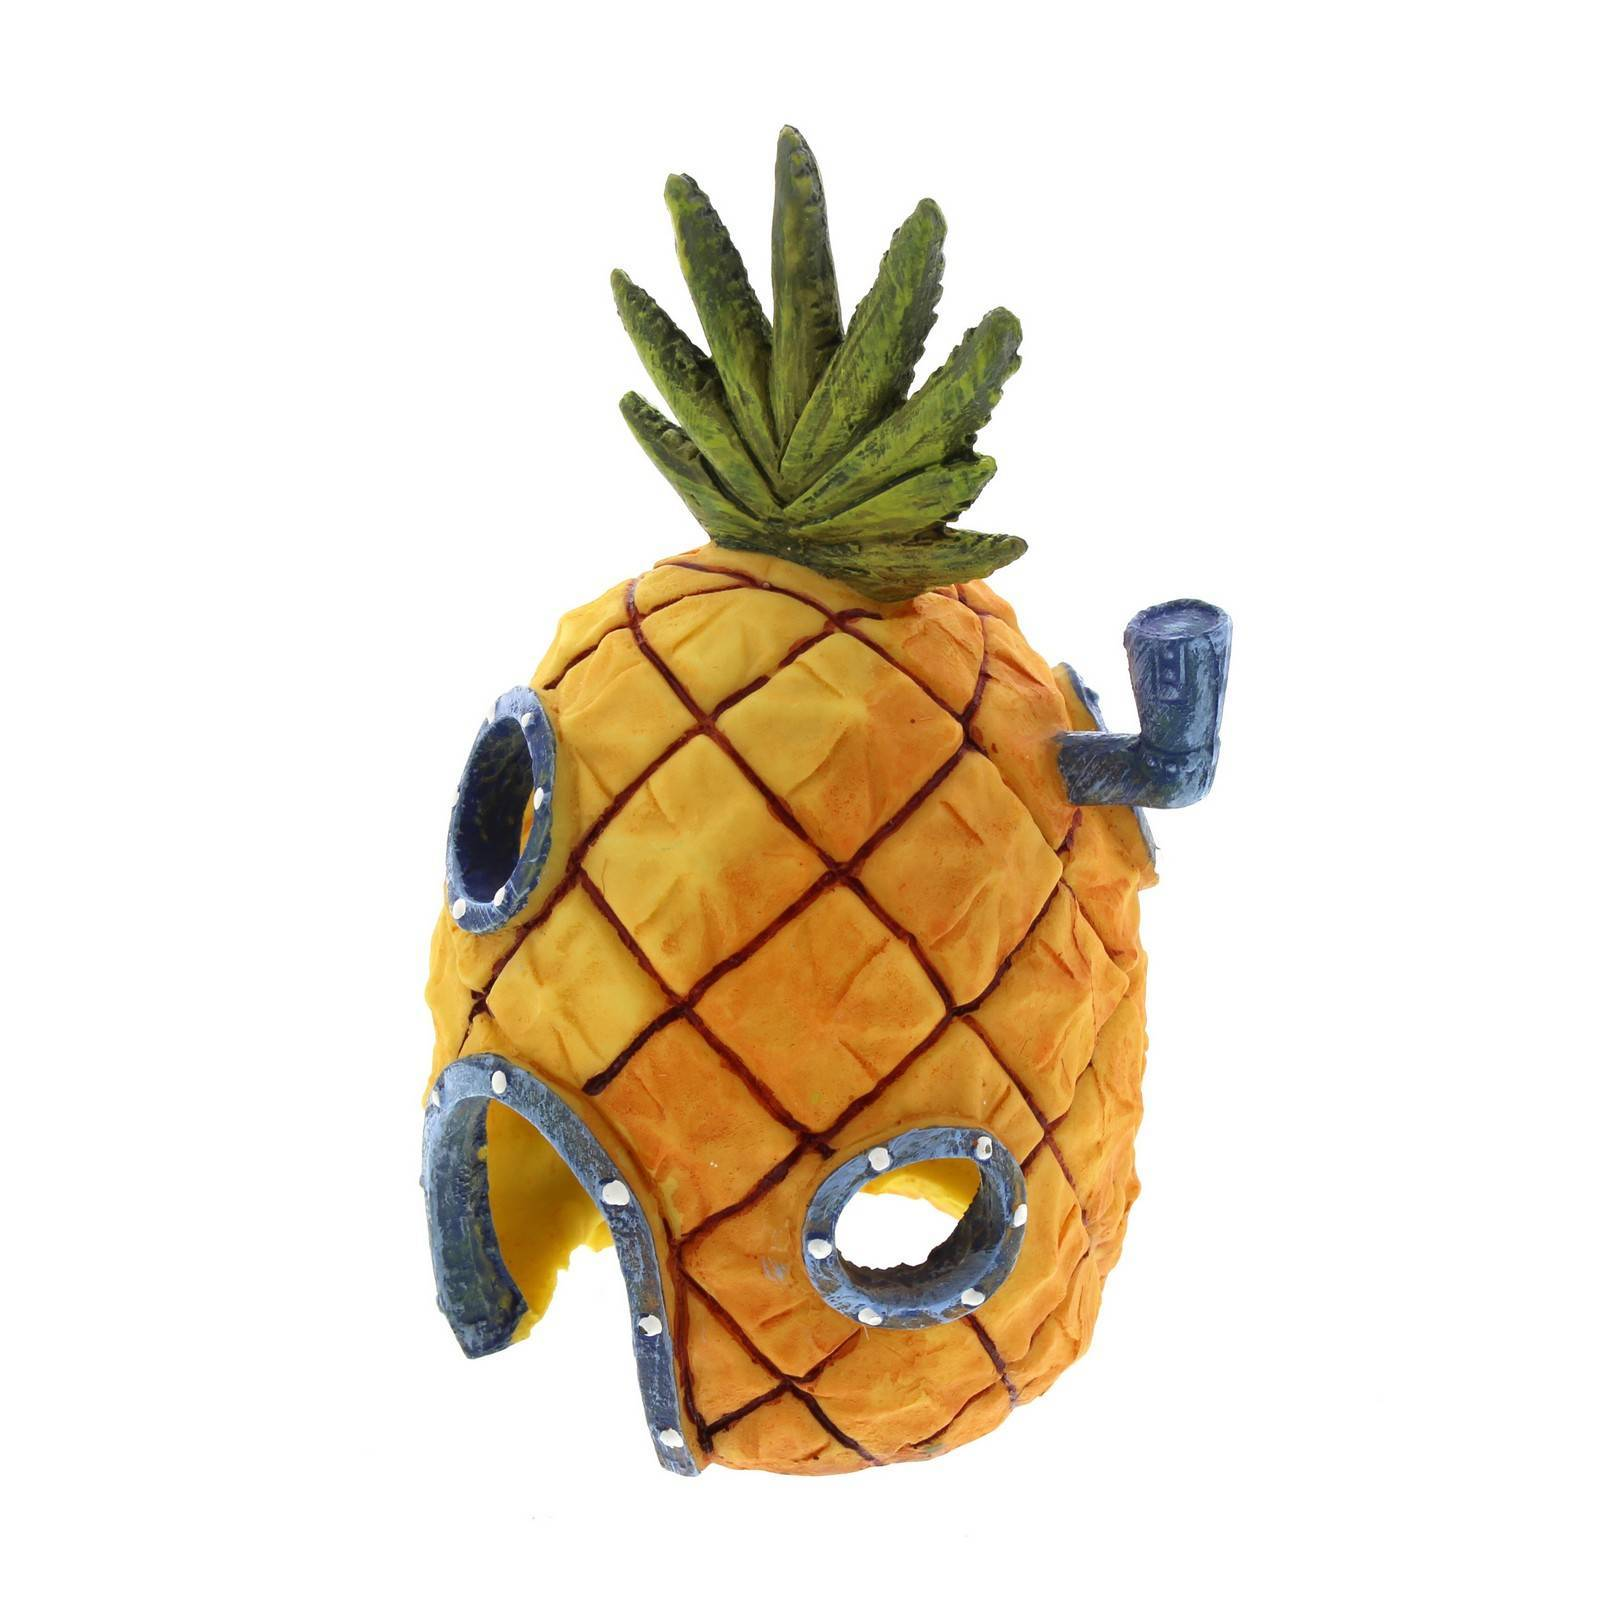 Ornament Decoration Spongebob Pineapple Home Aquarium Fish ...